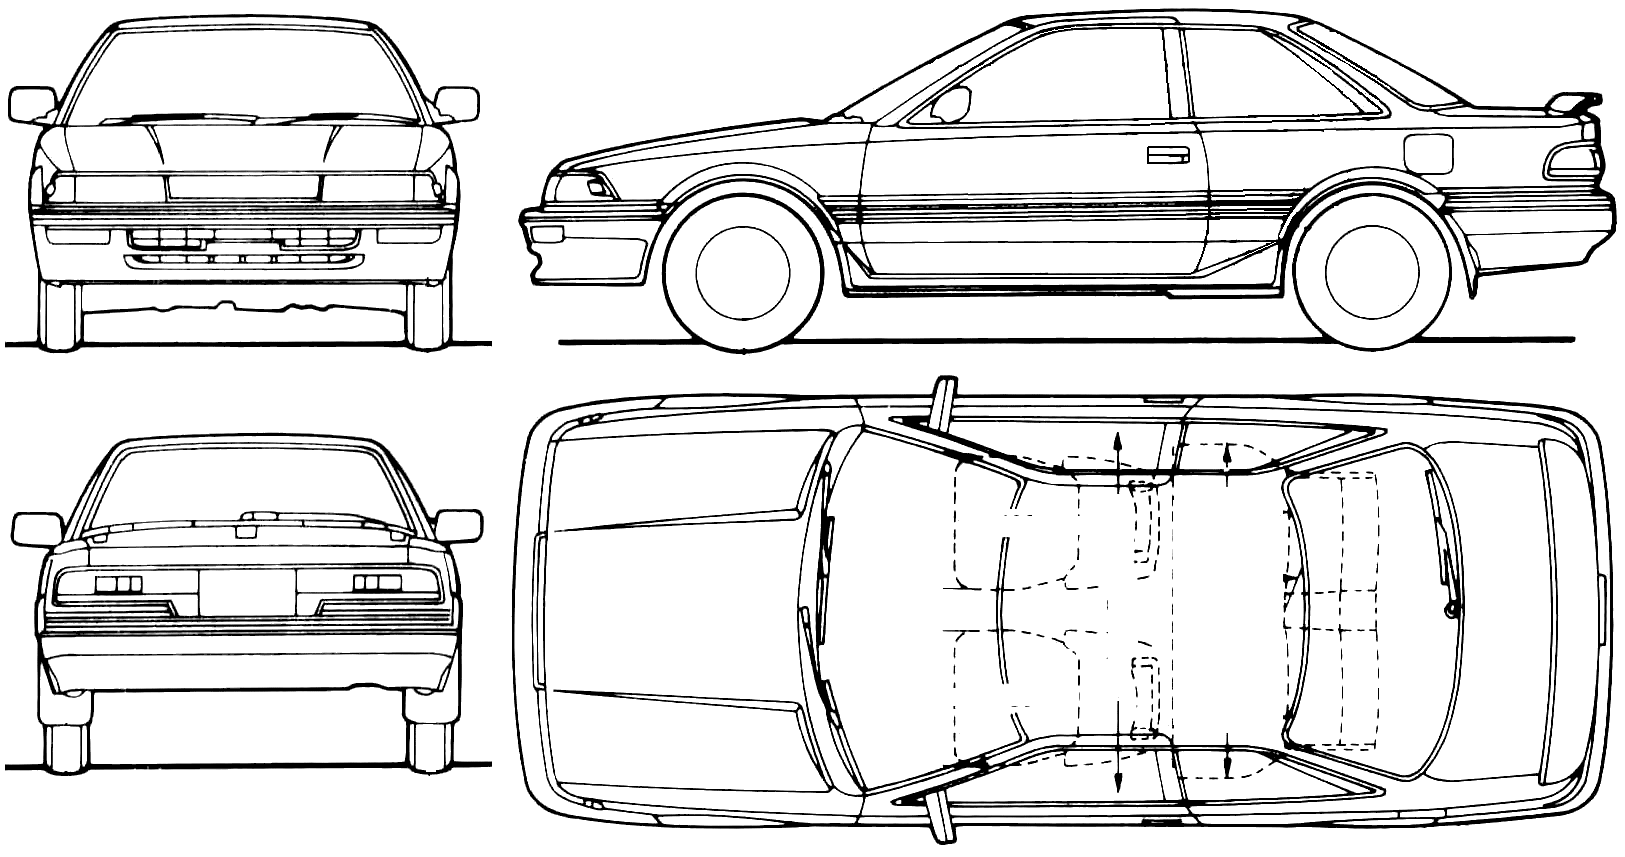 1990 toyota corolla levin coupe blueprints free outlines toyota corolla levin blueprints malvernweather Gallery